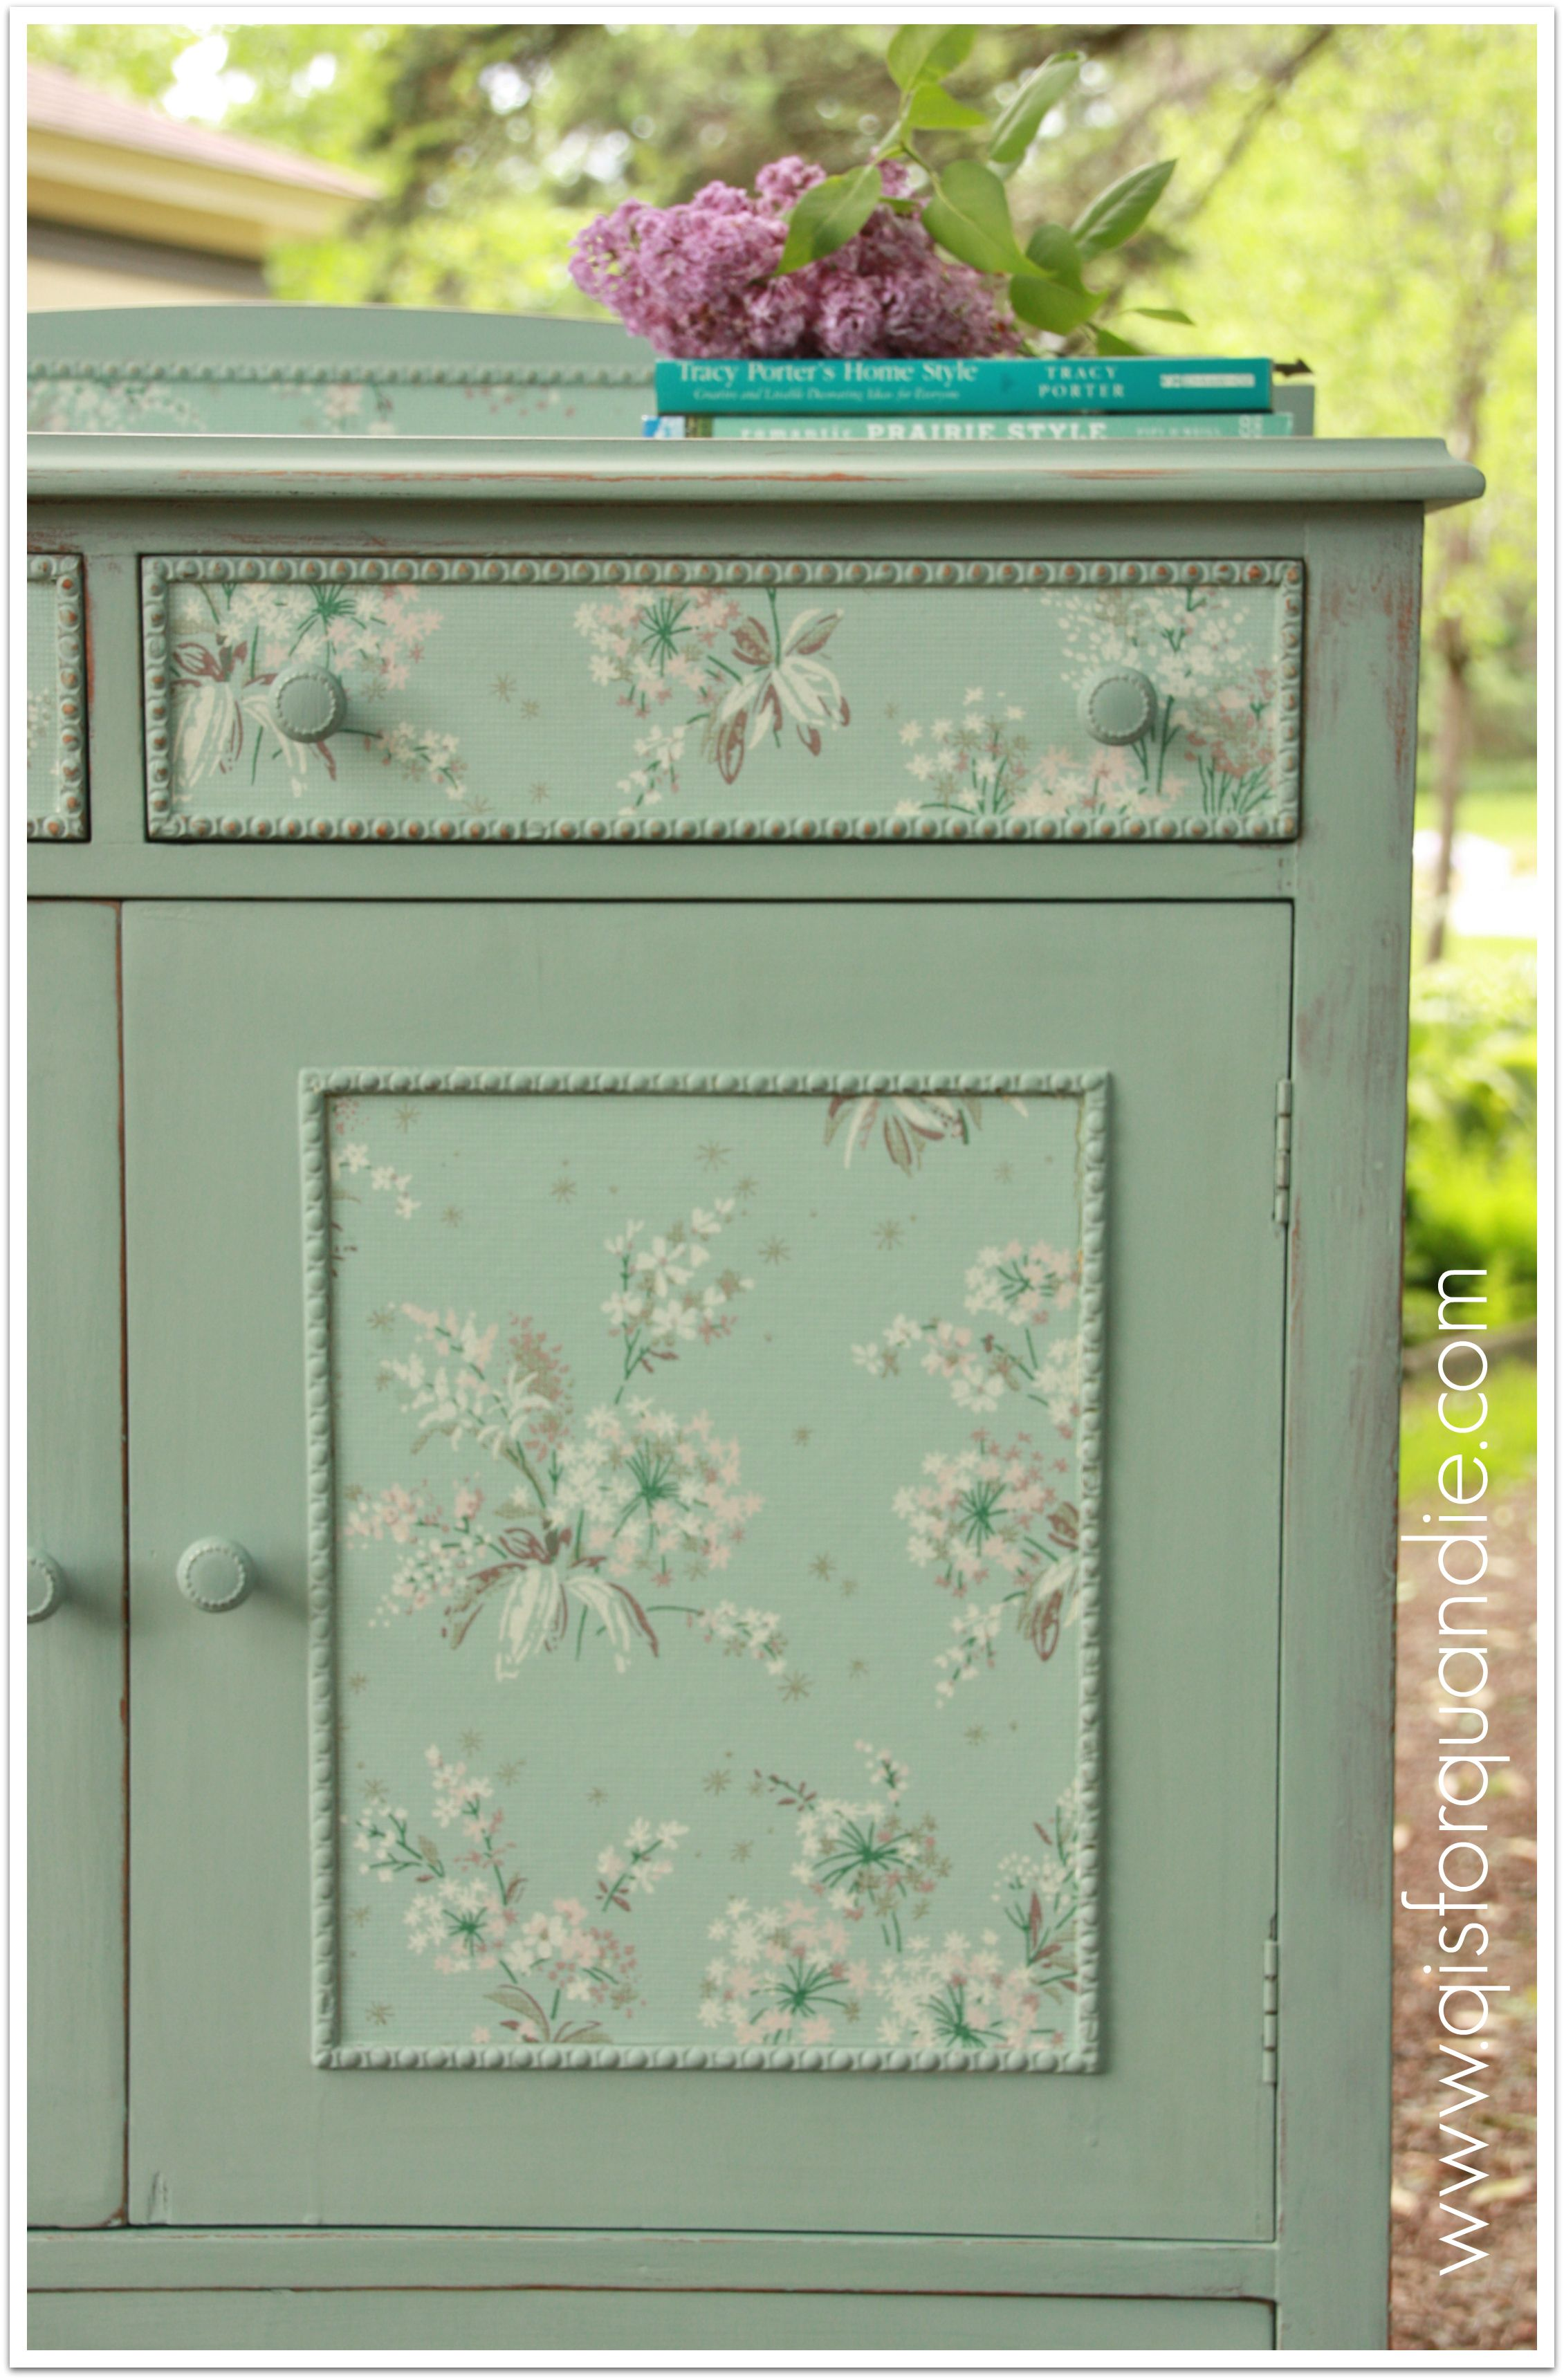 ed-linen-press-dresser-q-is-for-quandie-Zone-wallpaper-wp52012602